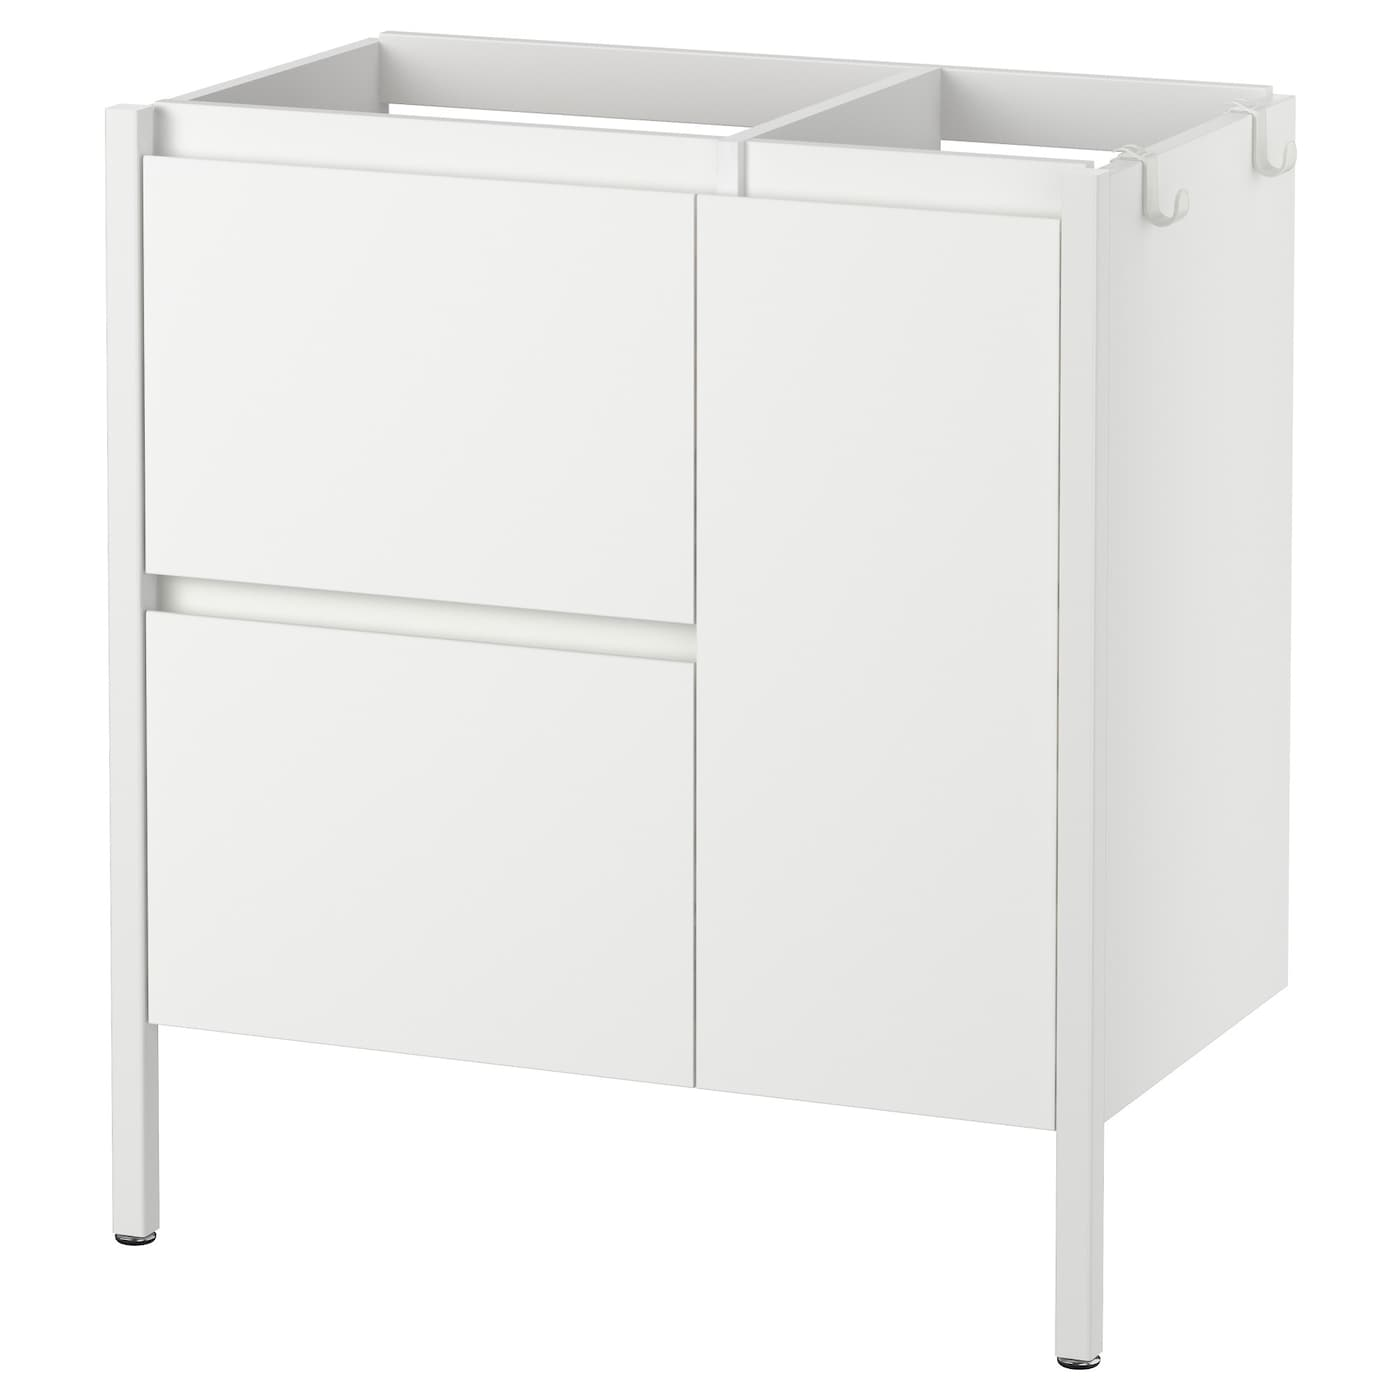 yddingen wash stand white 70x76 cm ikea. Black Bedroom Furniture Sets. Home Design Ideas